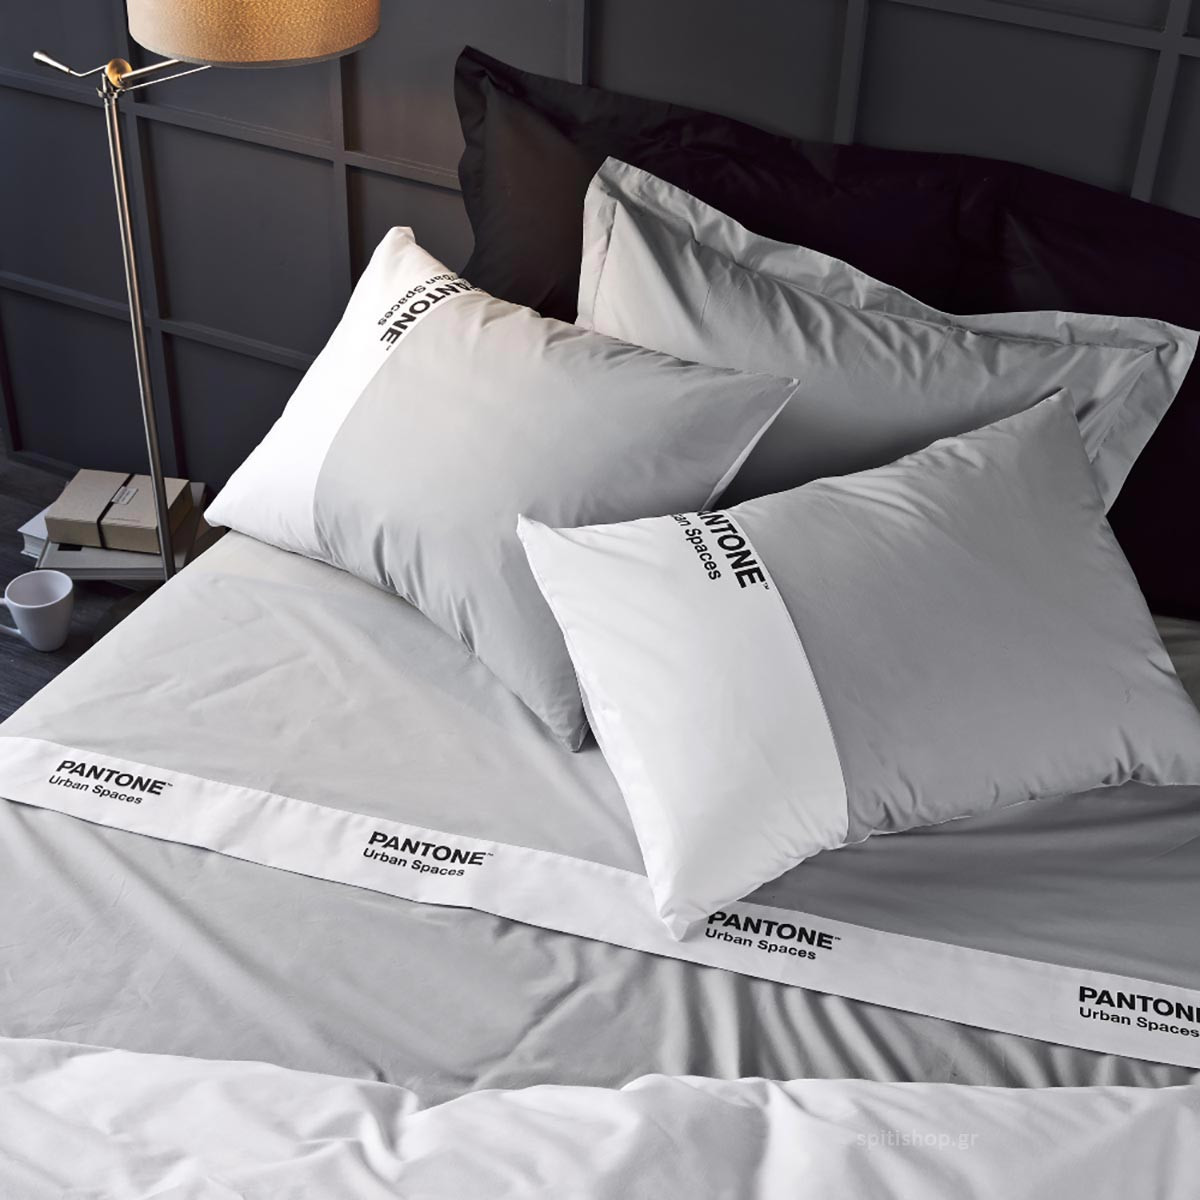 Σεντόνια King Size (Σετ) Kentia Stylish Pantone 4204